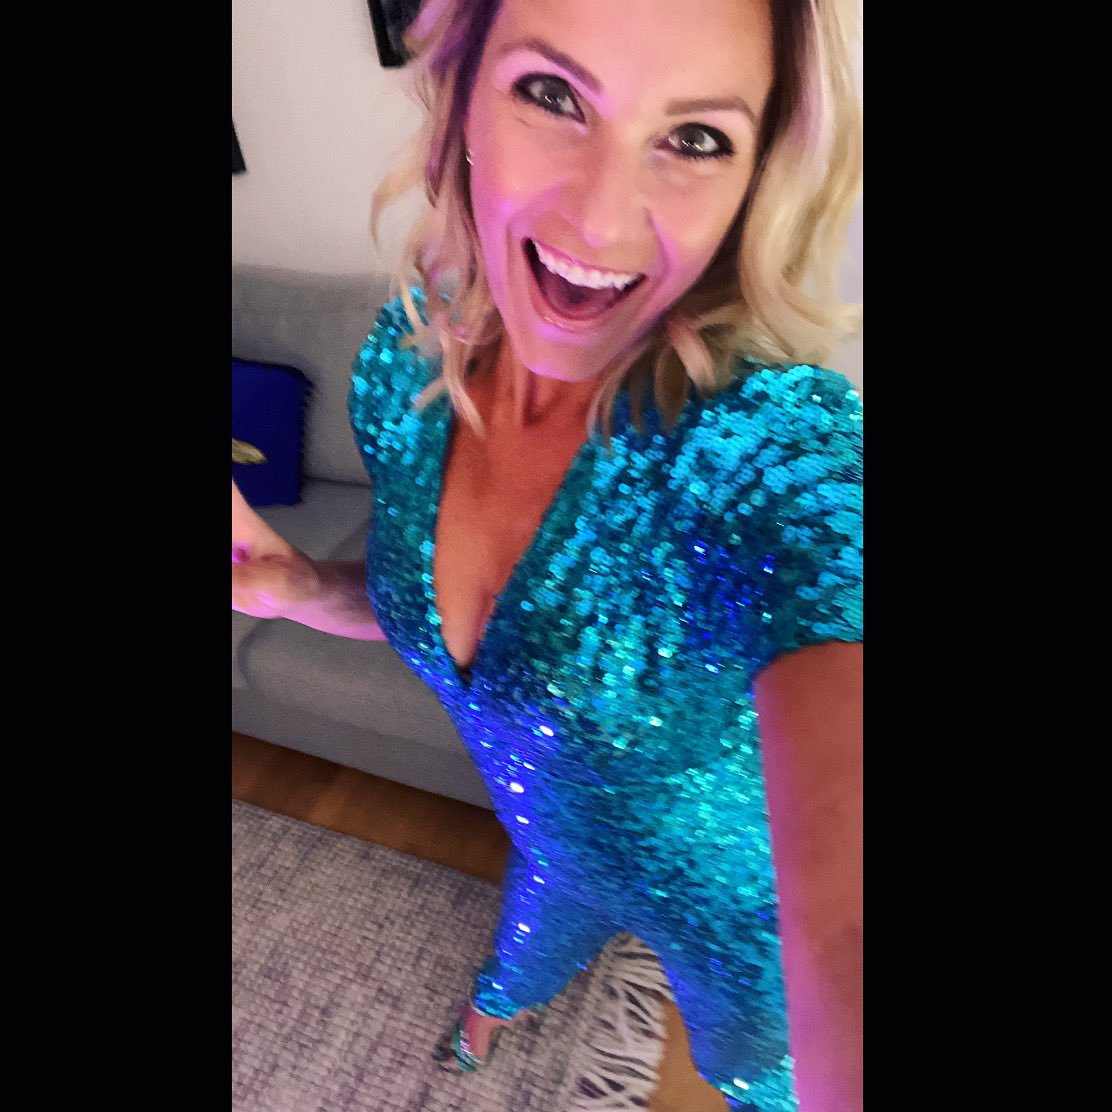 If I could wear this every day I would @NessyDress #sequincatsuit #sequins #partytime  pic.twitter.com/QpRCY7KBU9